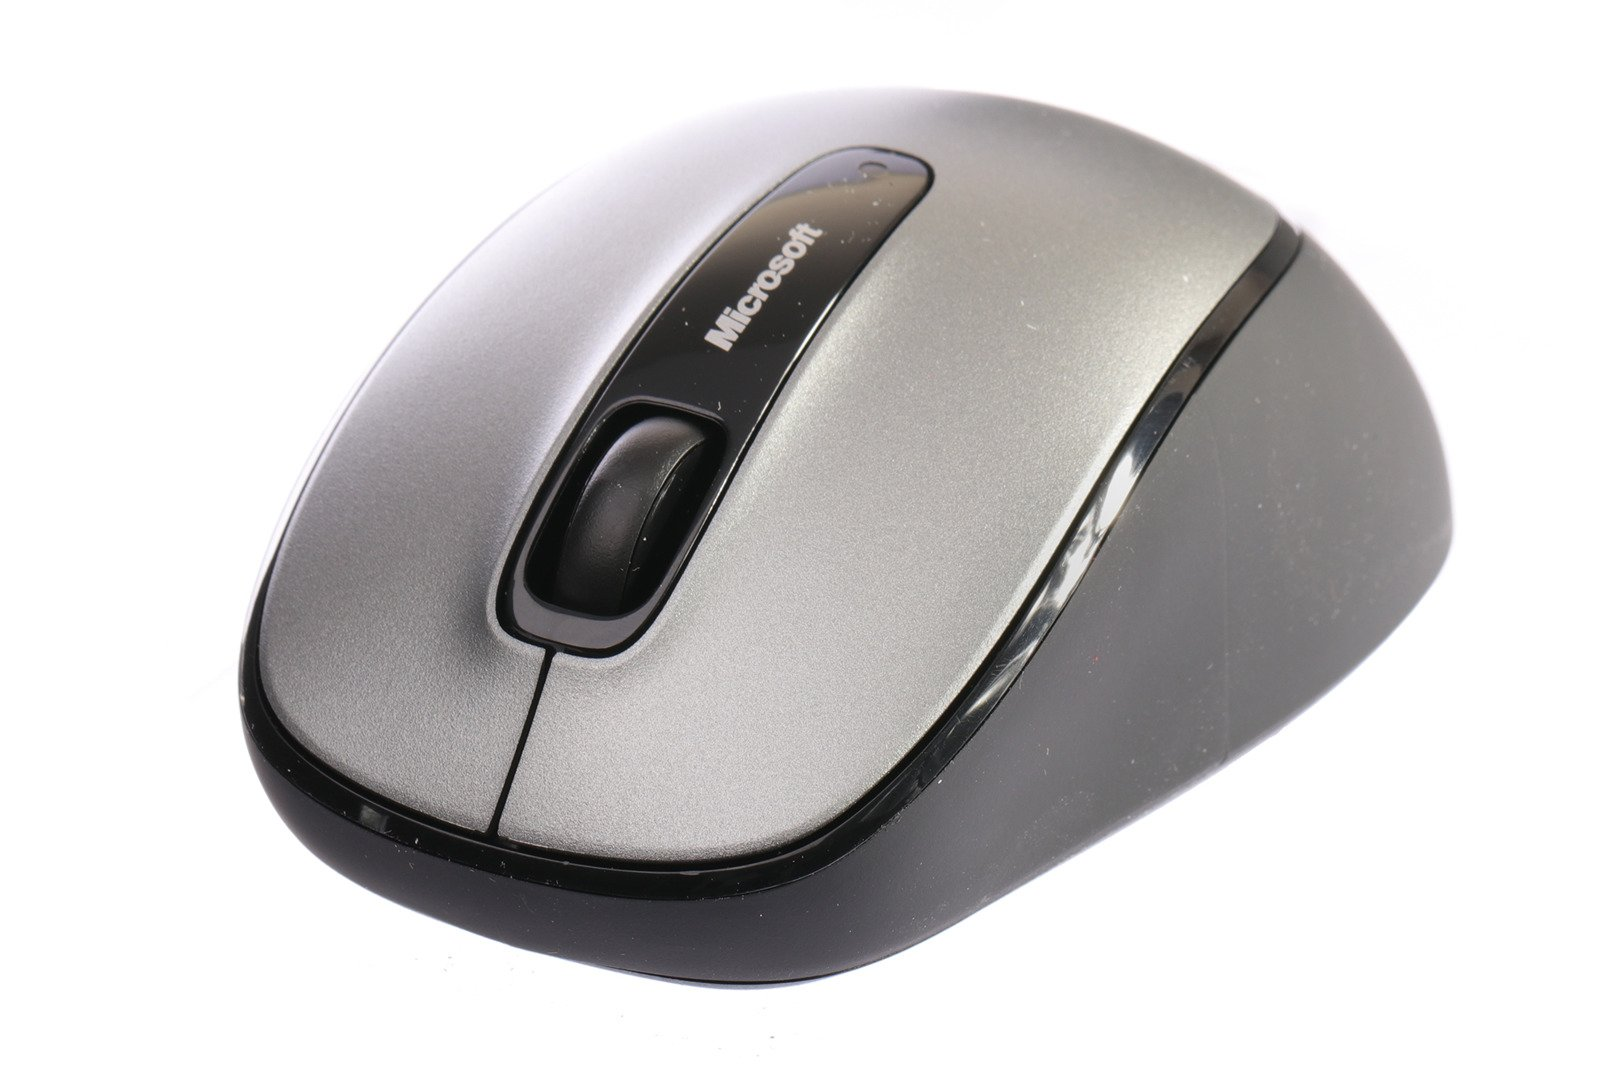 cc3e3d0a935 Microsoft Wireless Mouse 2000 | Computers \ Peripherals \ Pointing devices  \ Mouse | Dropmax